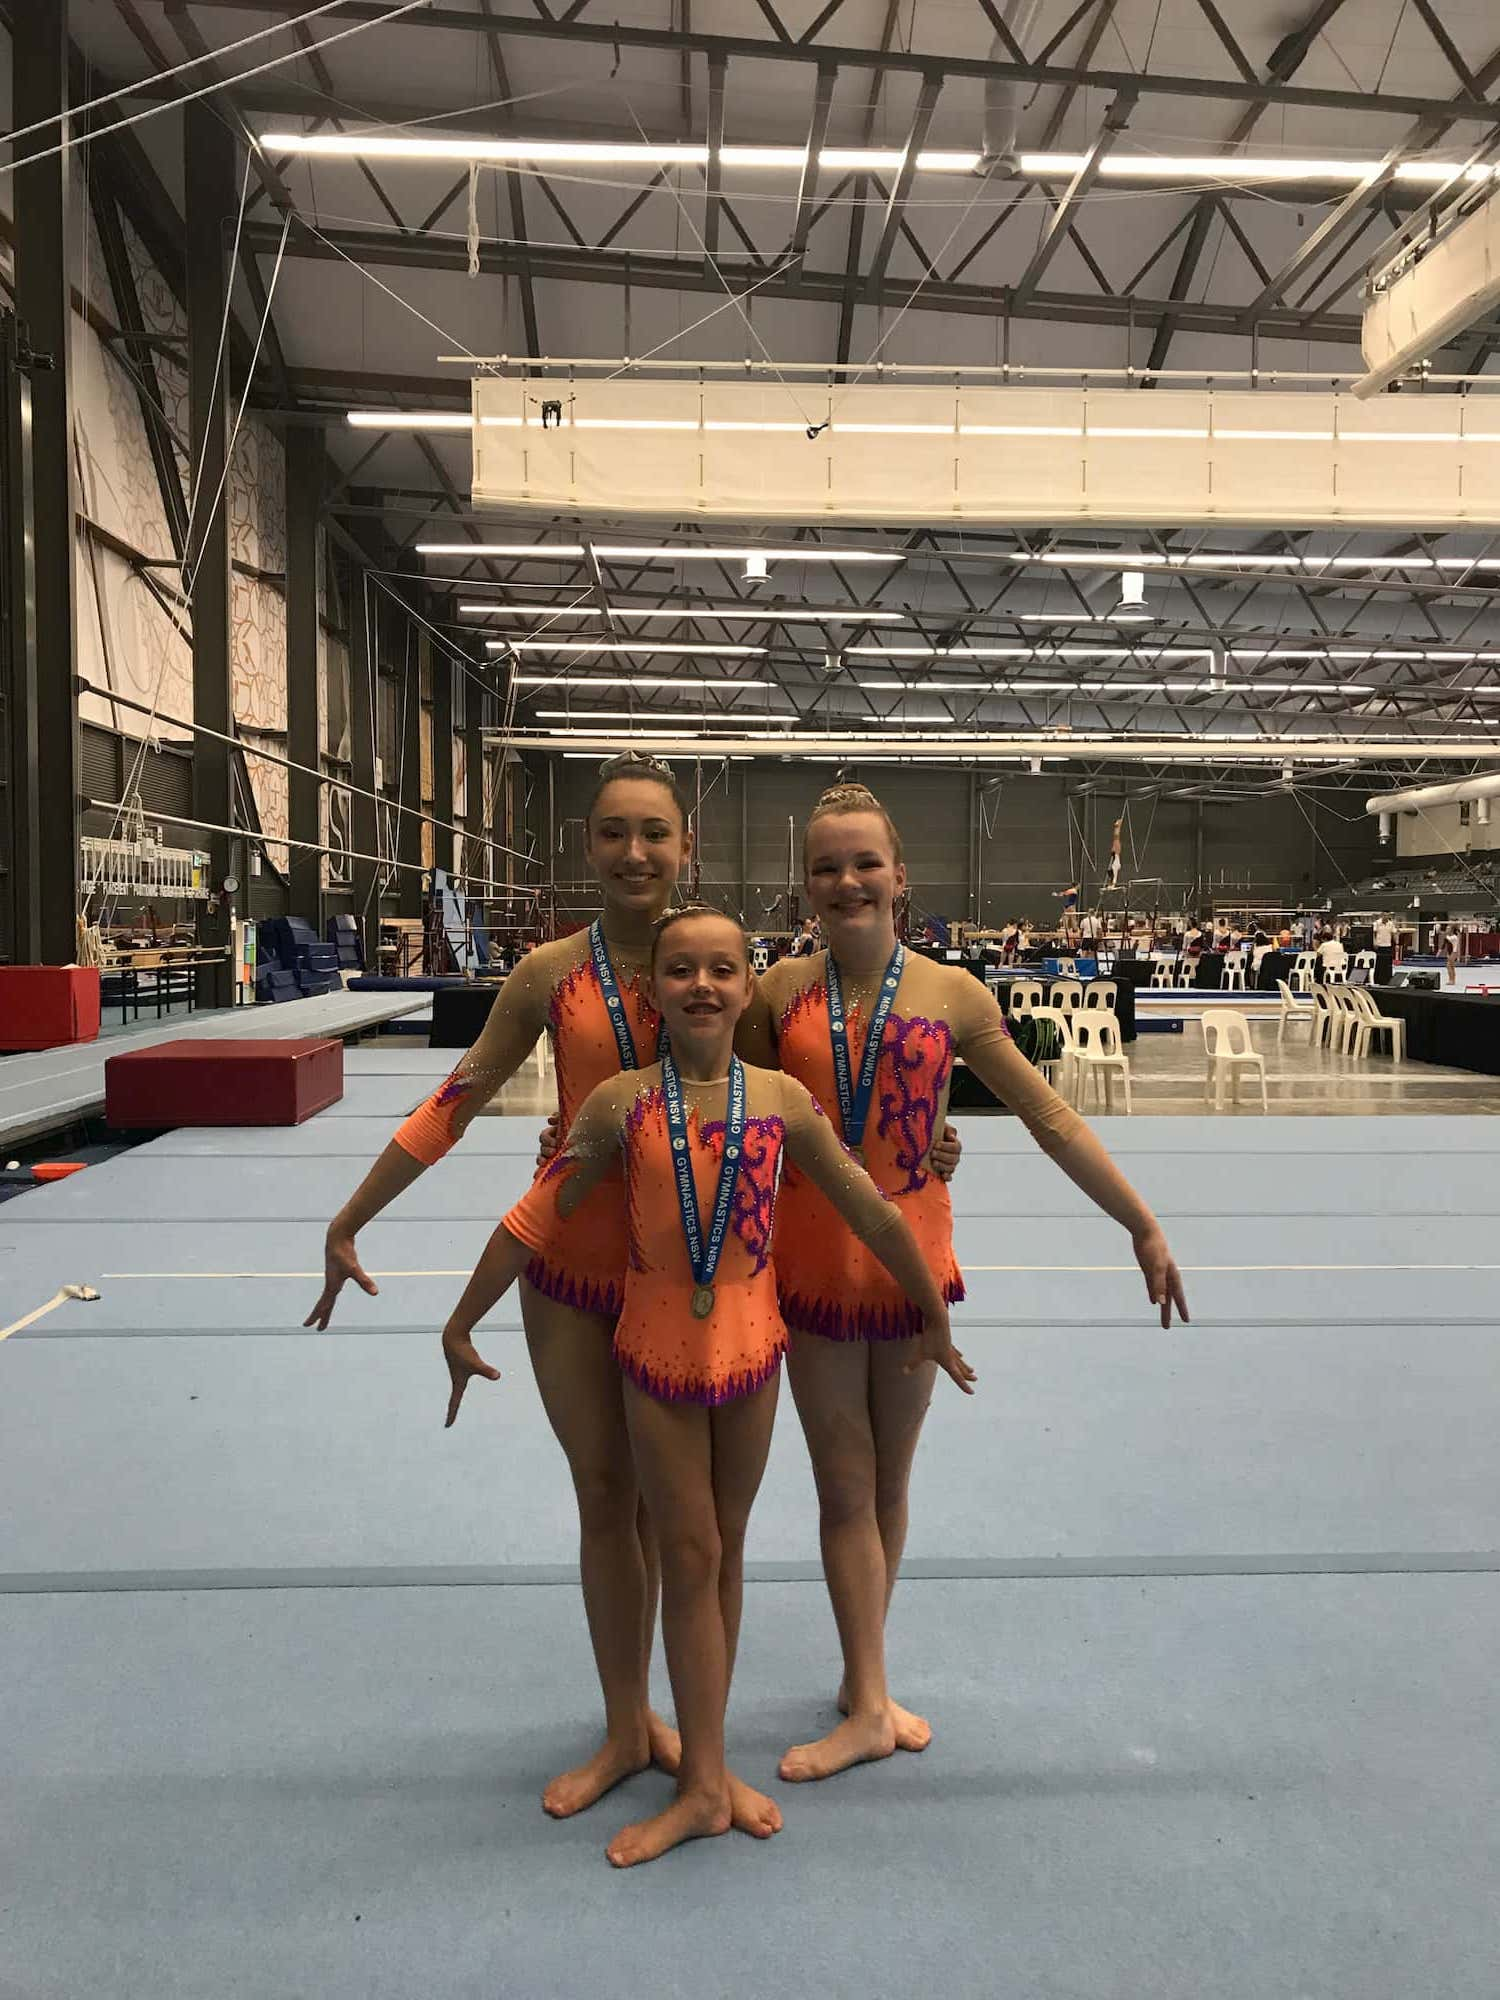 Acrobatic Gymnastics Leotards for Trio from Australia